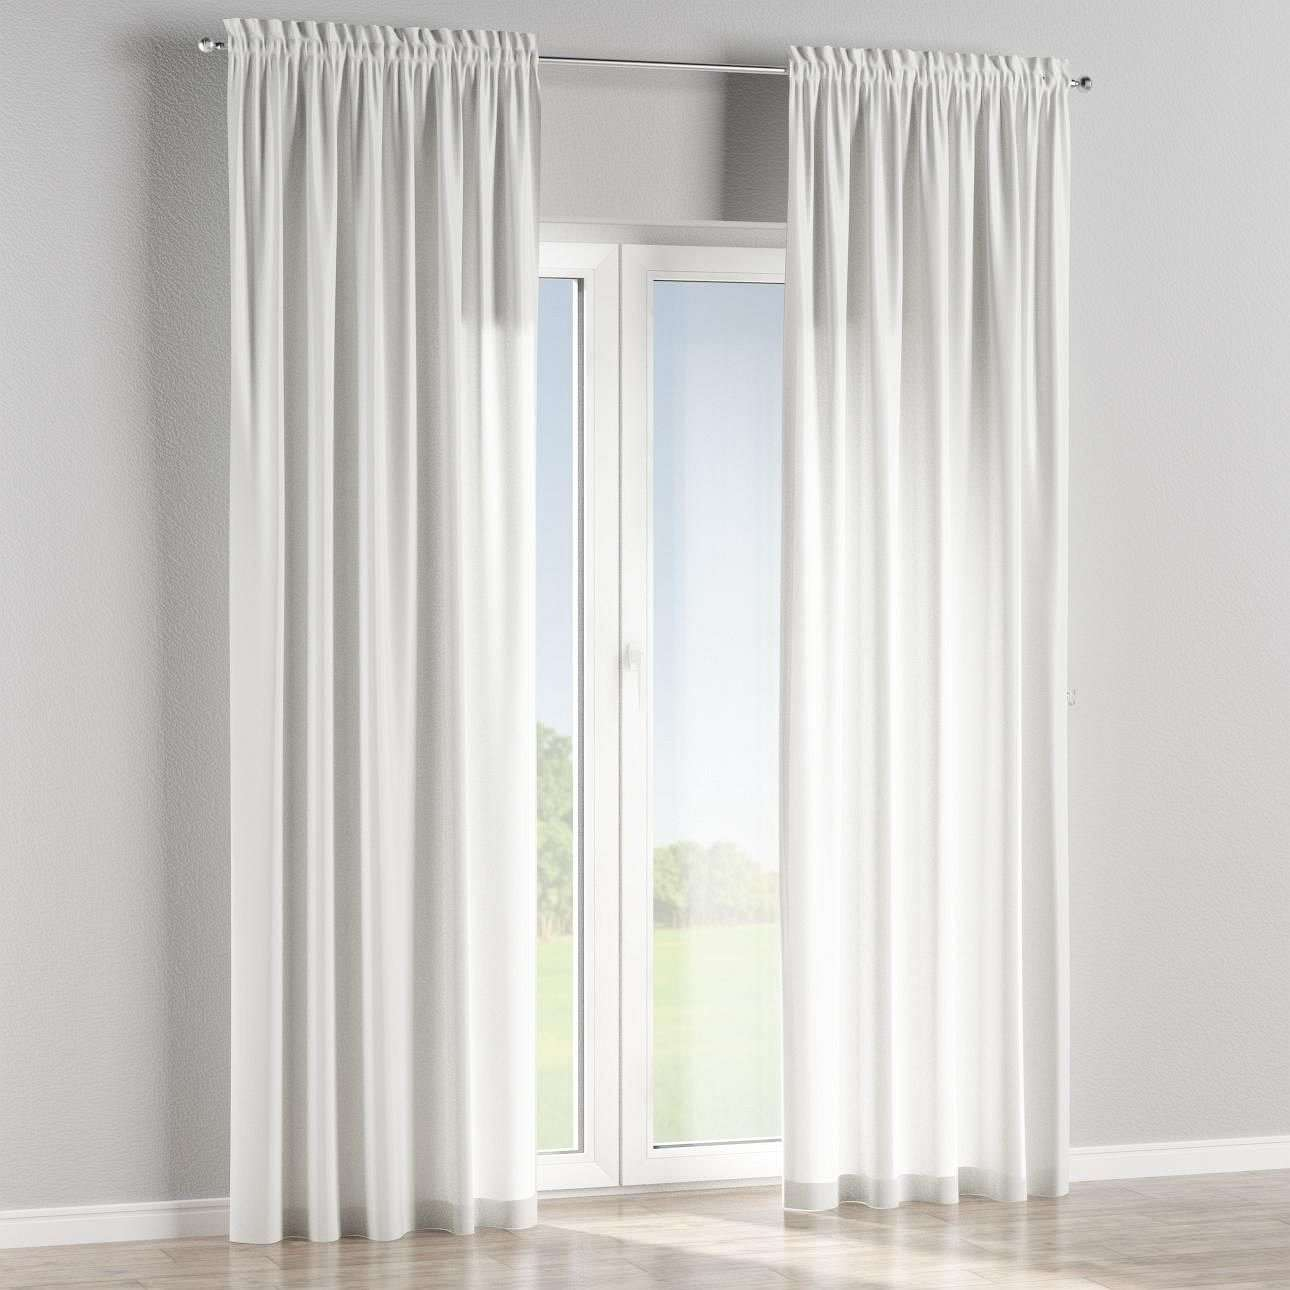 Slot and frill lined curtains in collection Mirella, fabric: 140-40